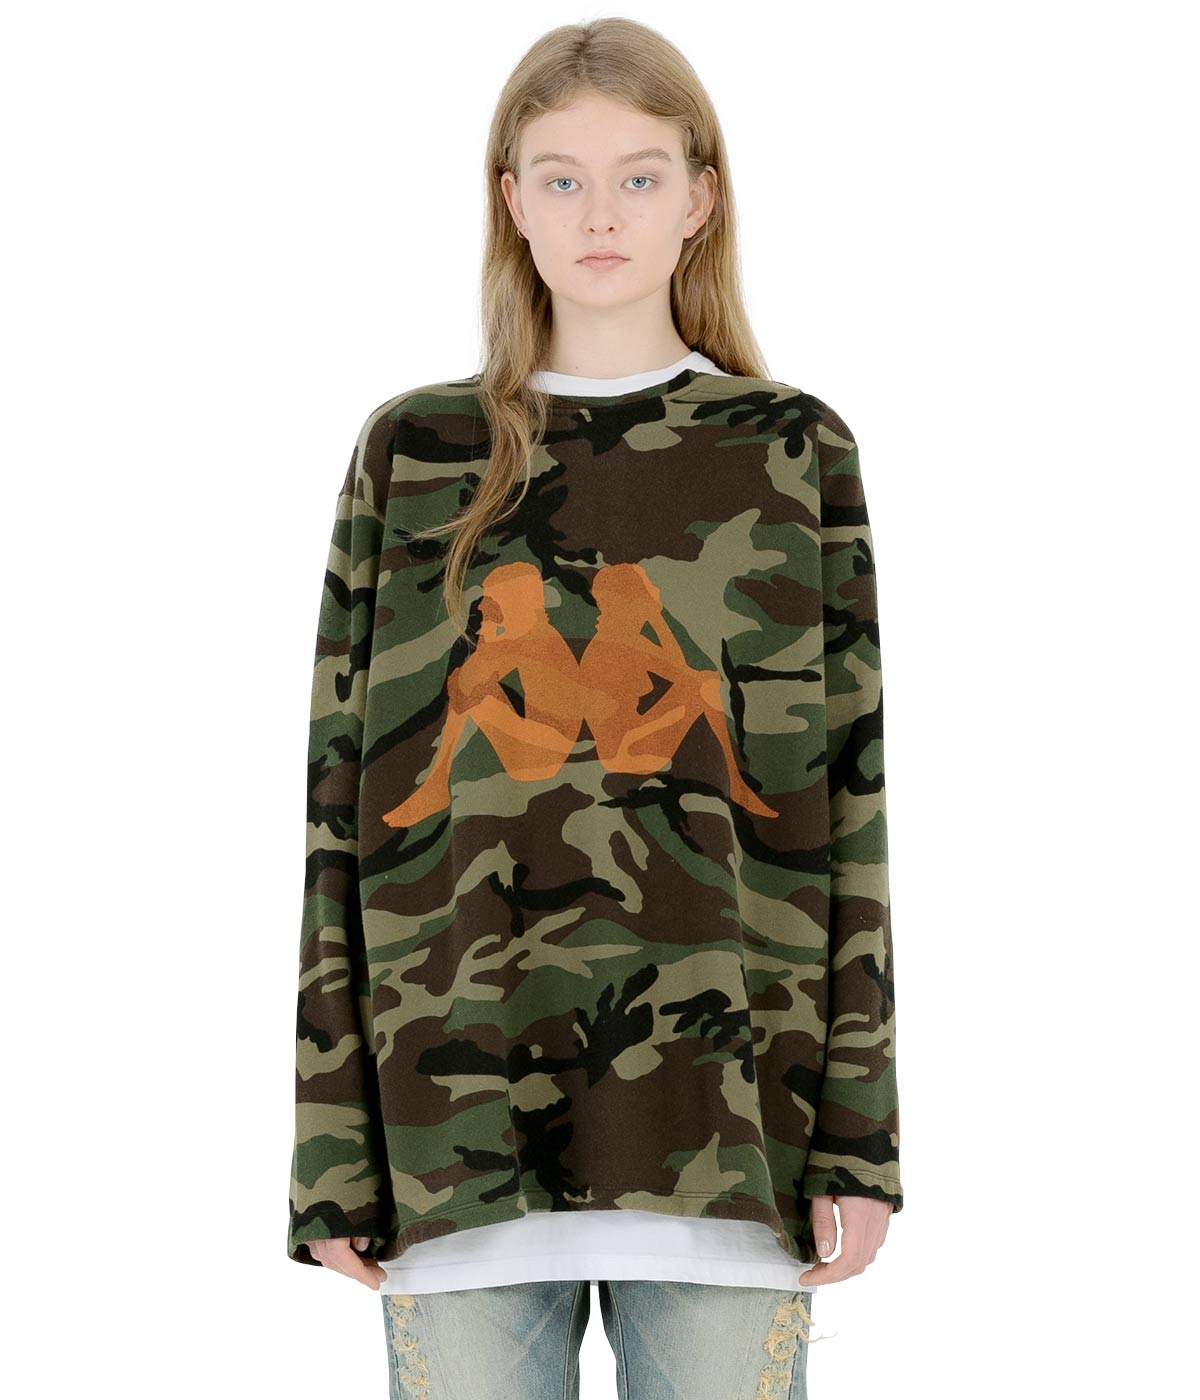 Military Camouflage Sailor Sweatshirt